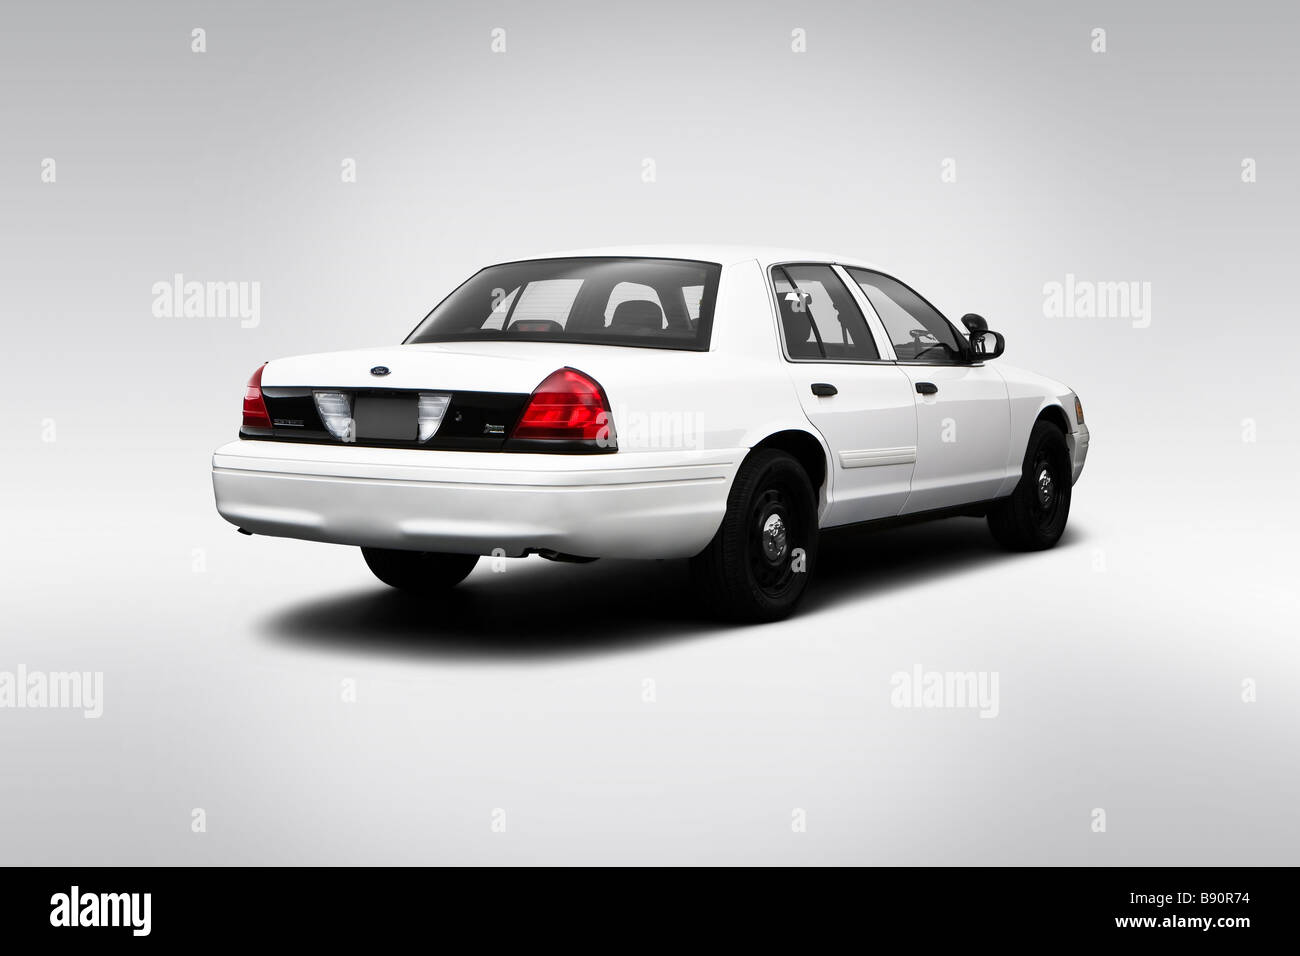 Ford Crown Victoria Police Interceptor In White Rear Angle View Stock Image